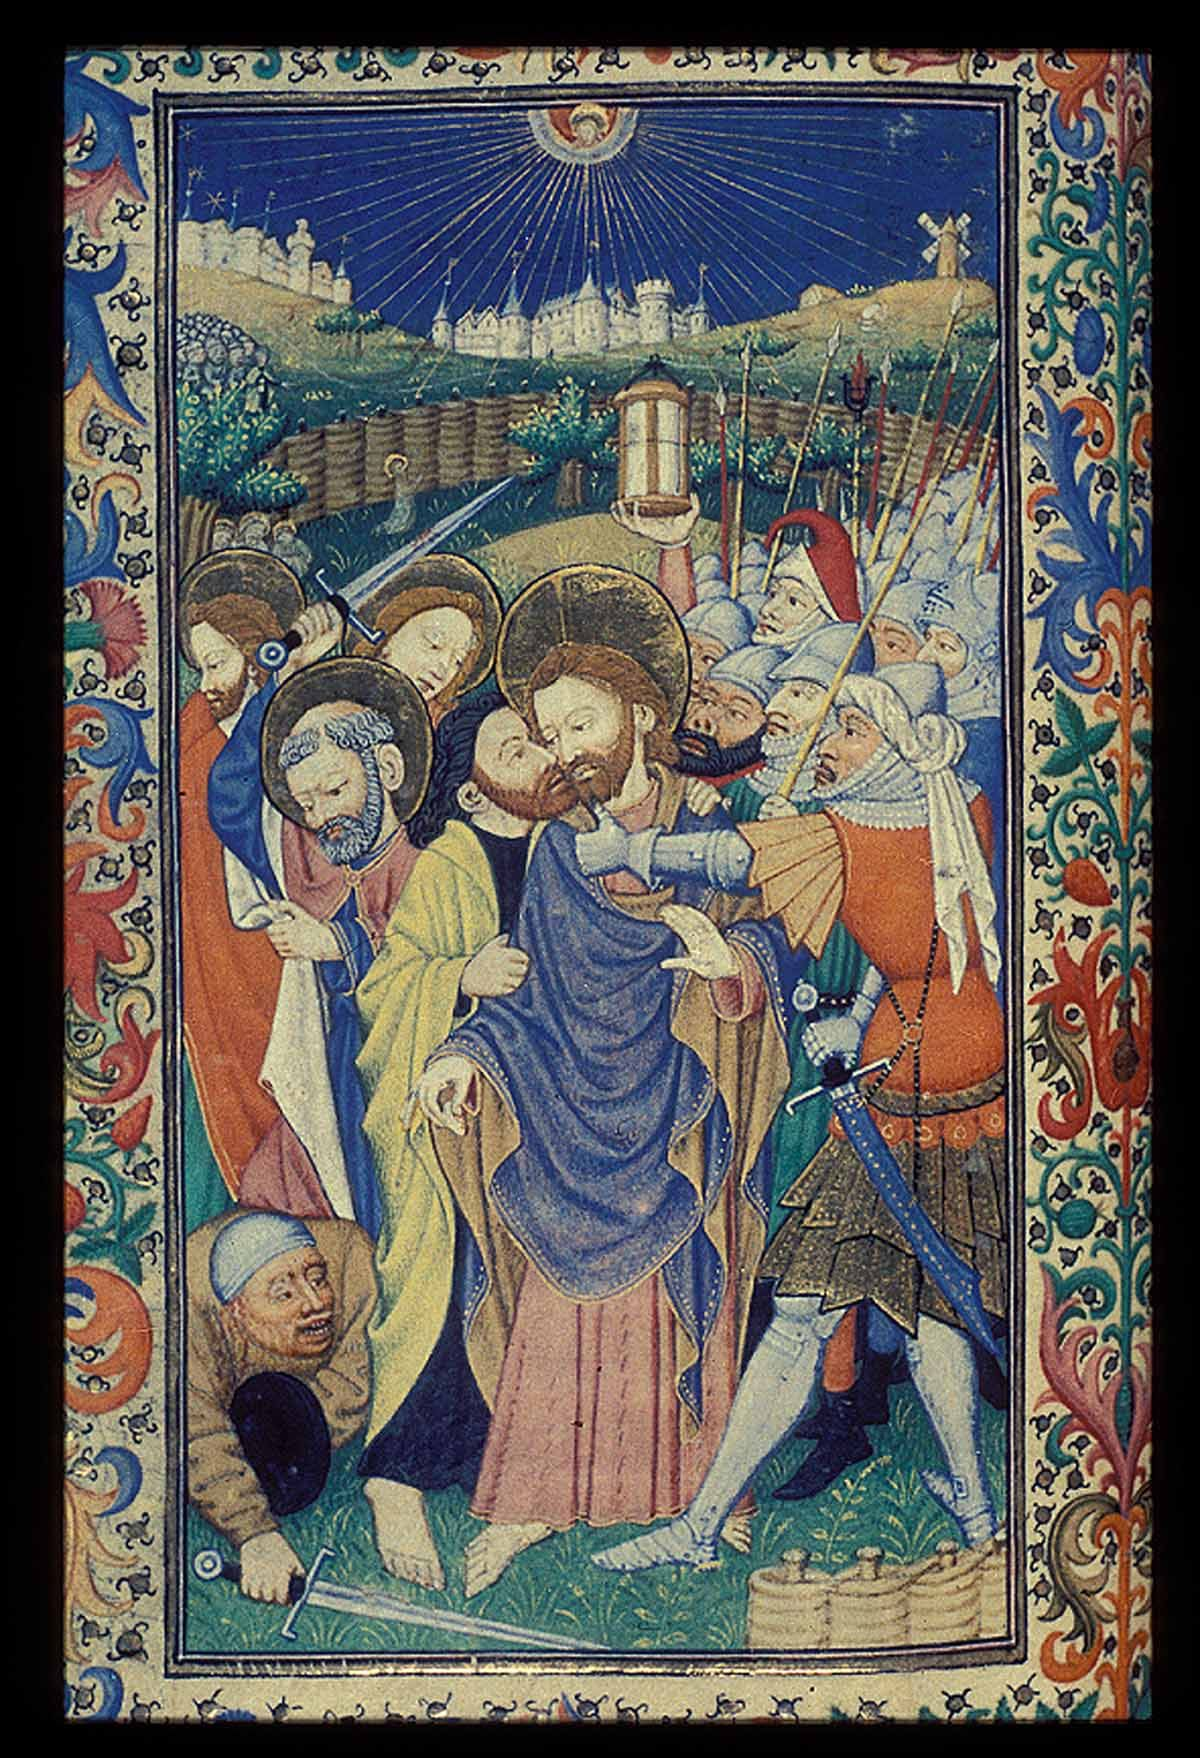 The Betrayal - From a Book of Hours produced in Normandy (c.1440-50) for the English market; the work of an artist known as the Master of Sir John Falstolf.